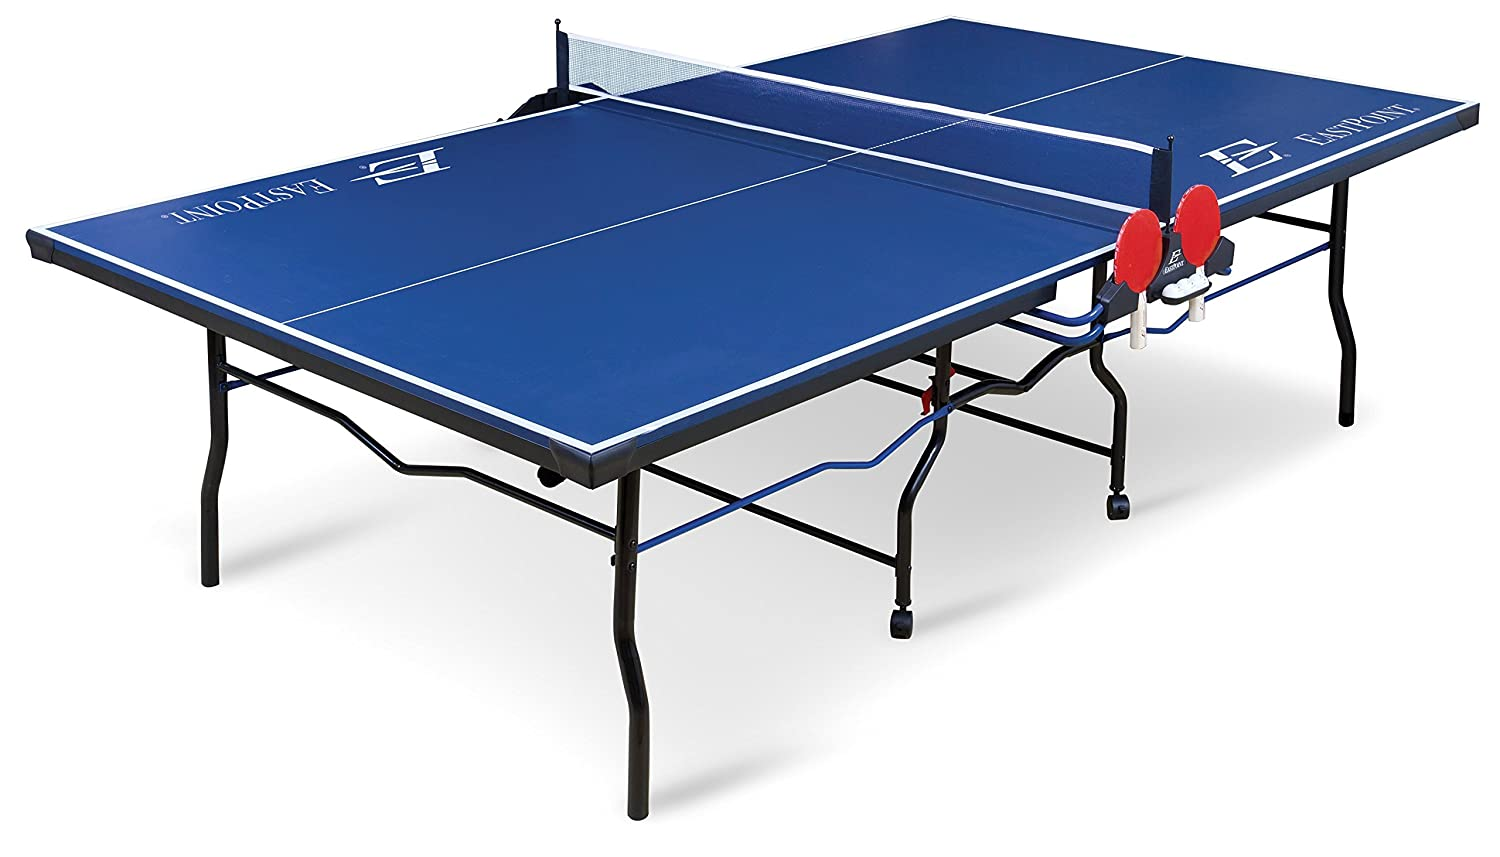 eastpoint ping pong table assembly instructions